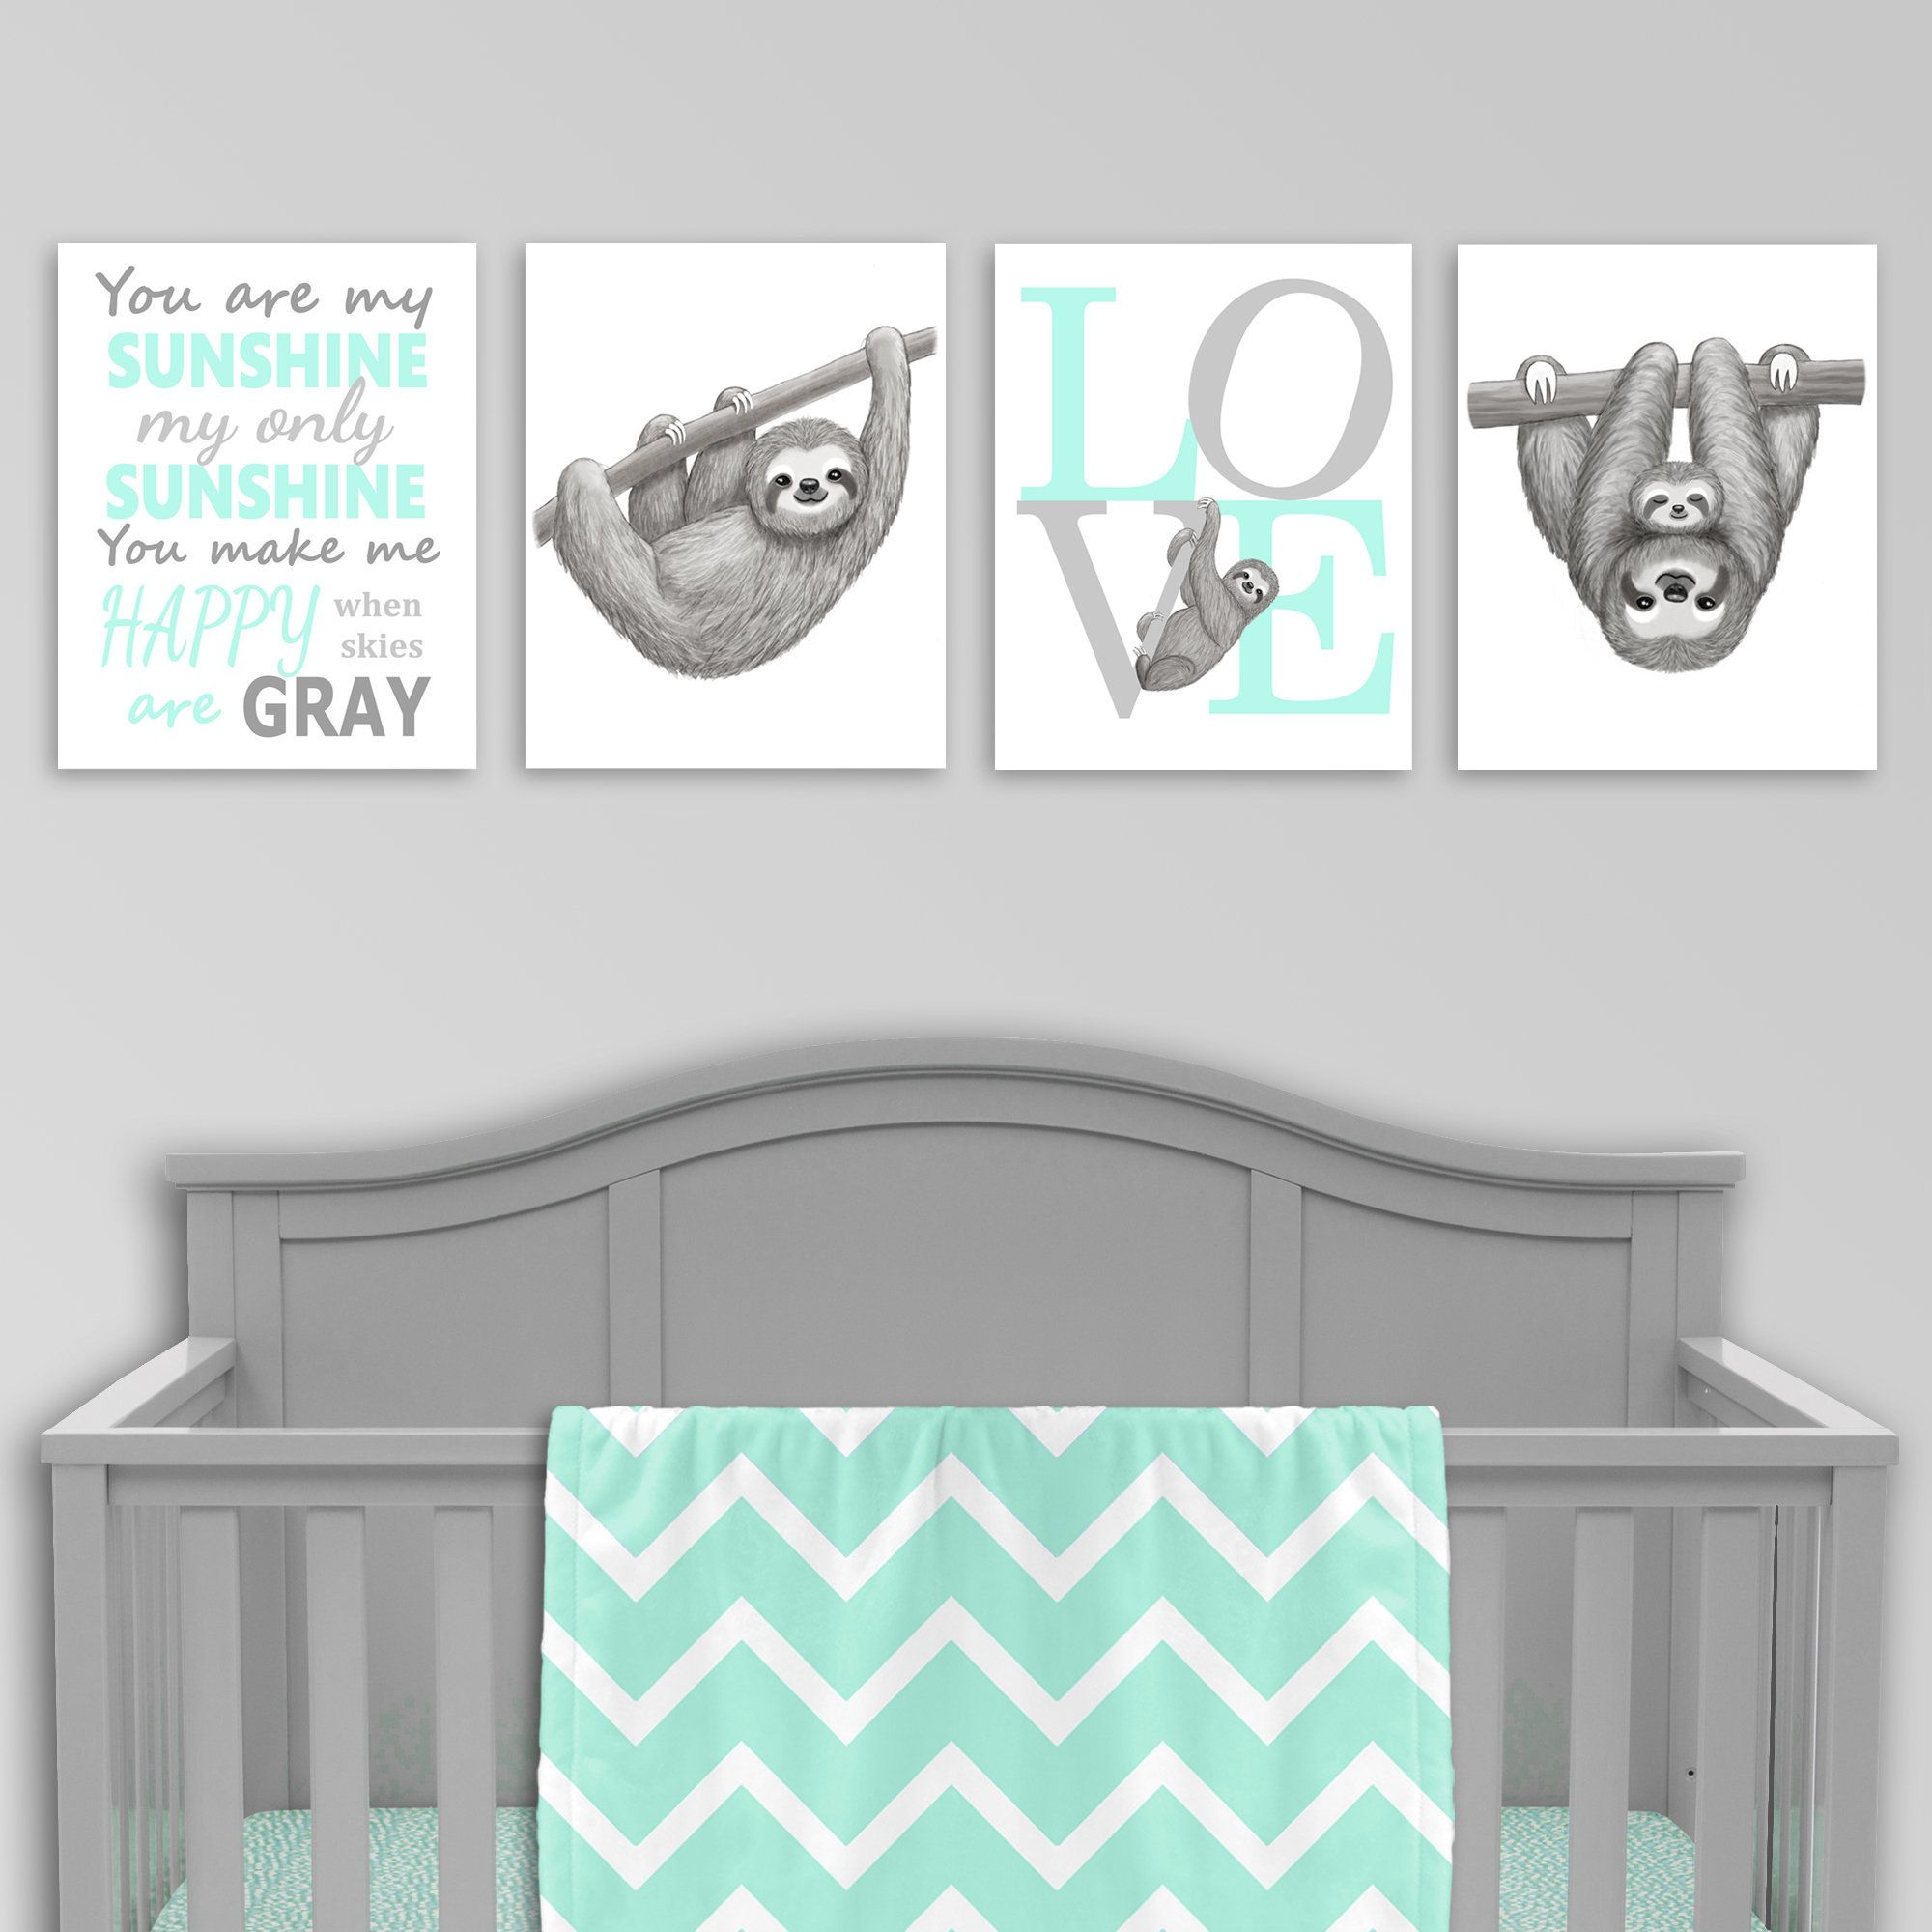 Sloth Nursery Wall Art Mint And Grey You Are My Sunshine Love Print Sloth Baby Decor Set Of 4 Prints Sloth Pictures Gender Neutral In 2021 Baby Decor Nursery Neutral Gender Neutral Nursery